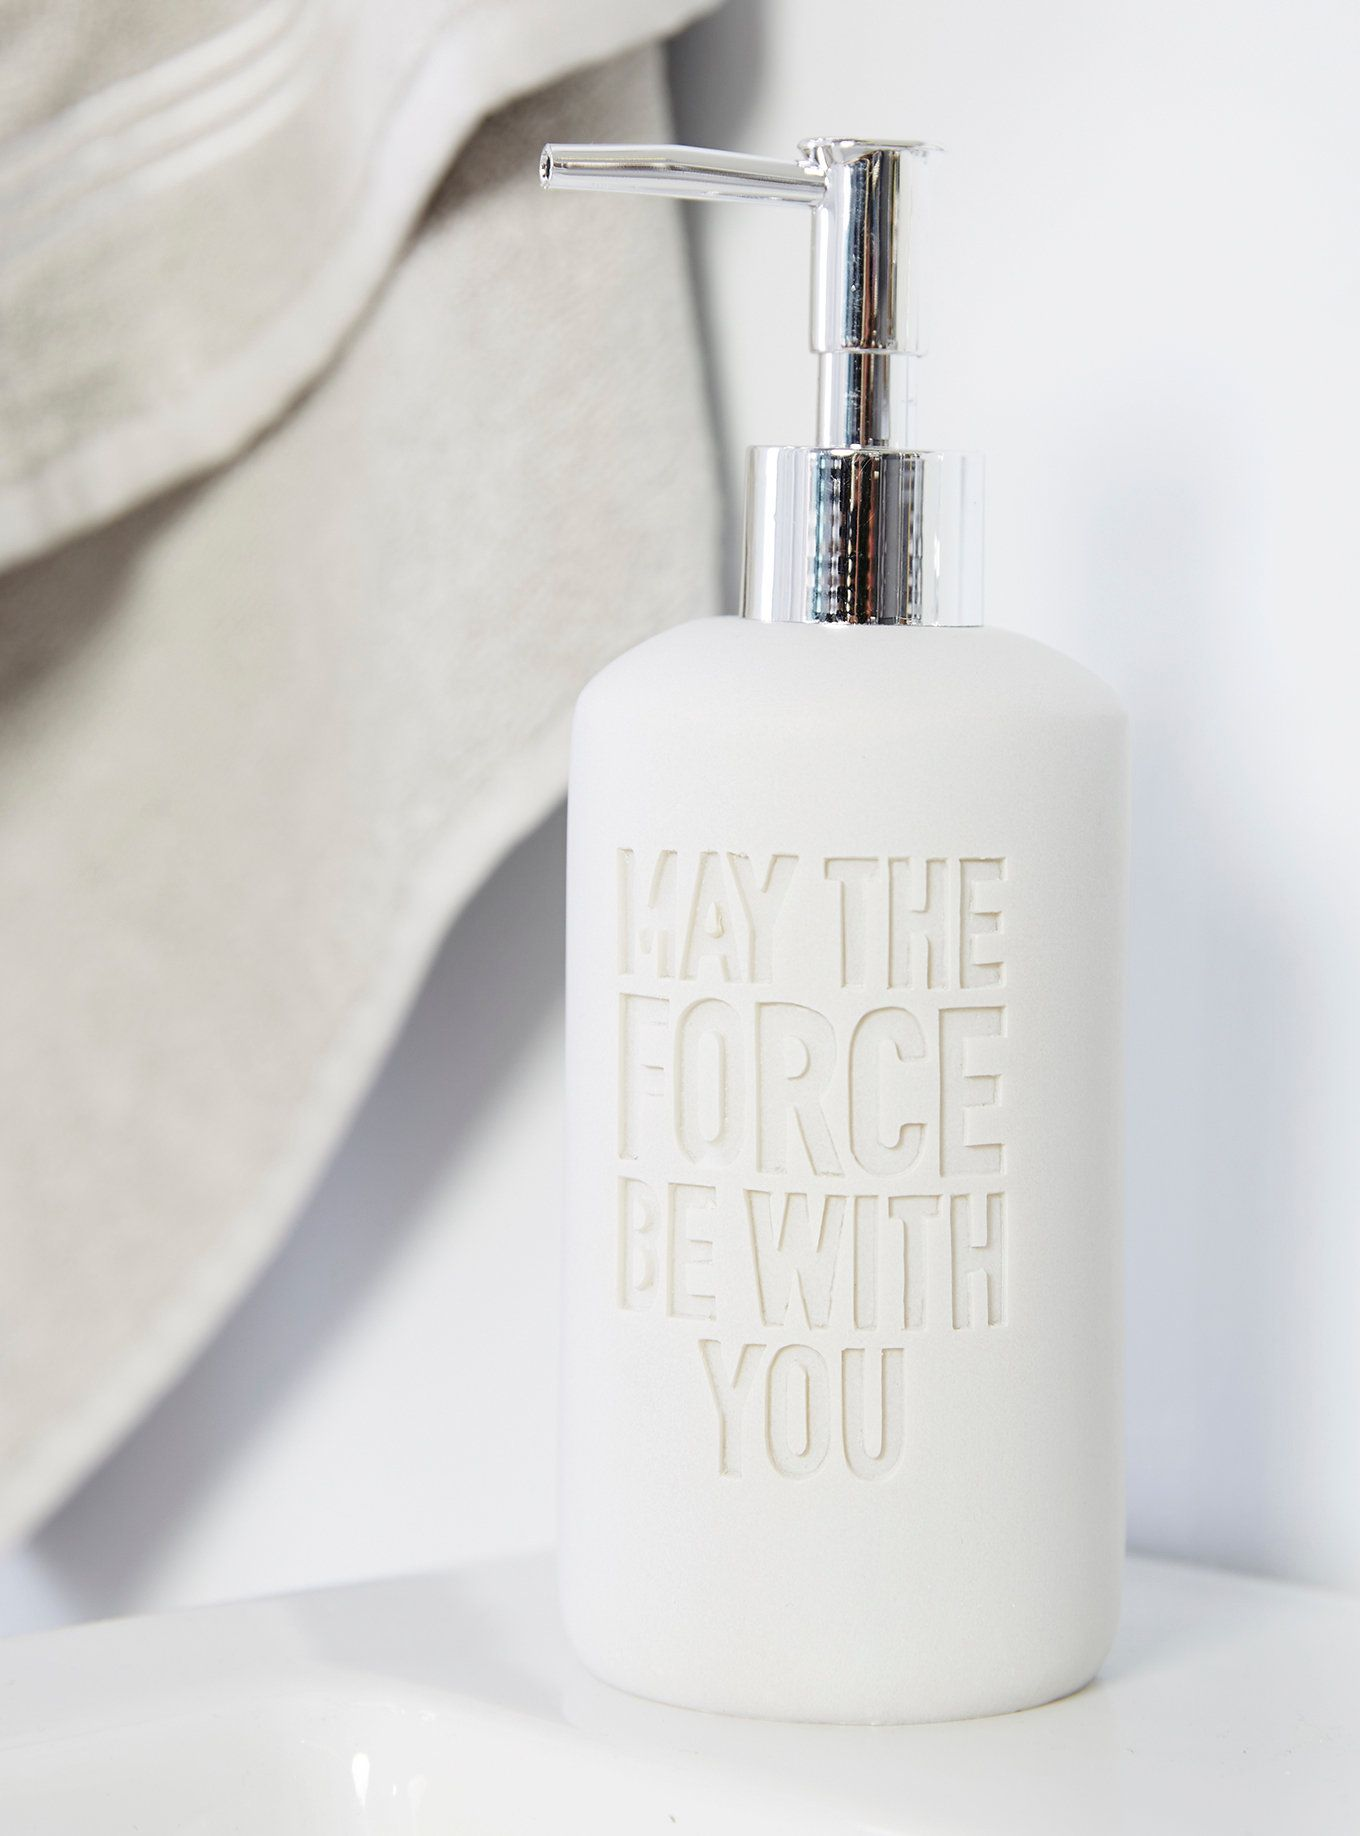 Star Wars May The Force Be With You Soap Dispenser | Mickey Fix ...